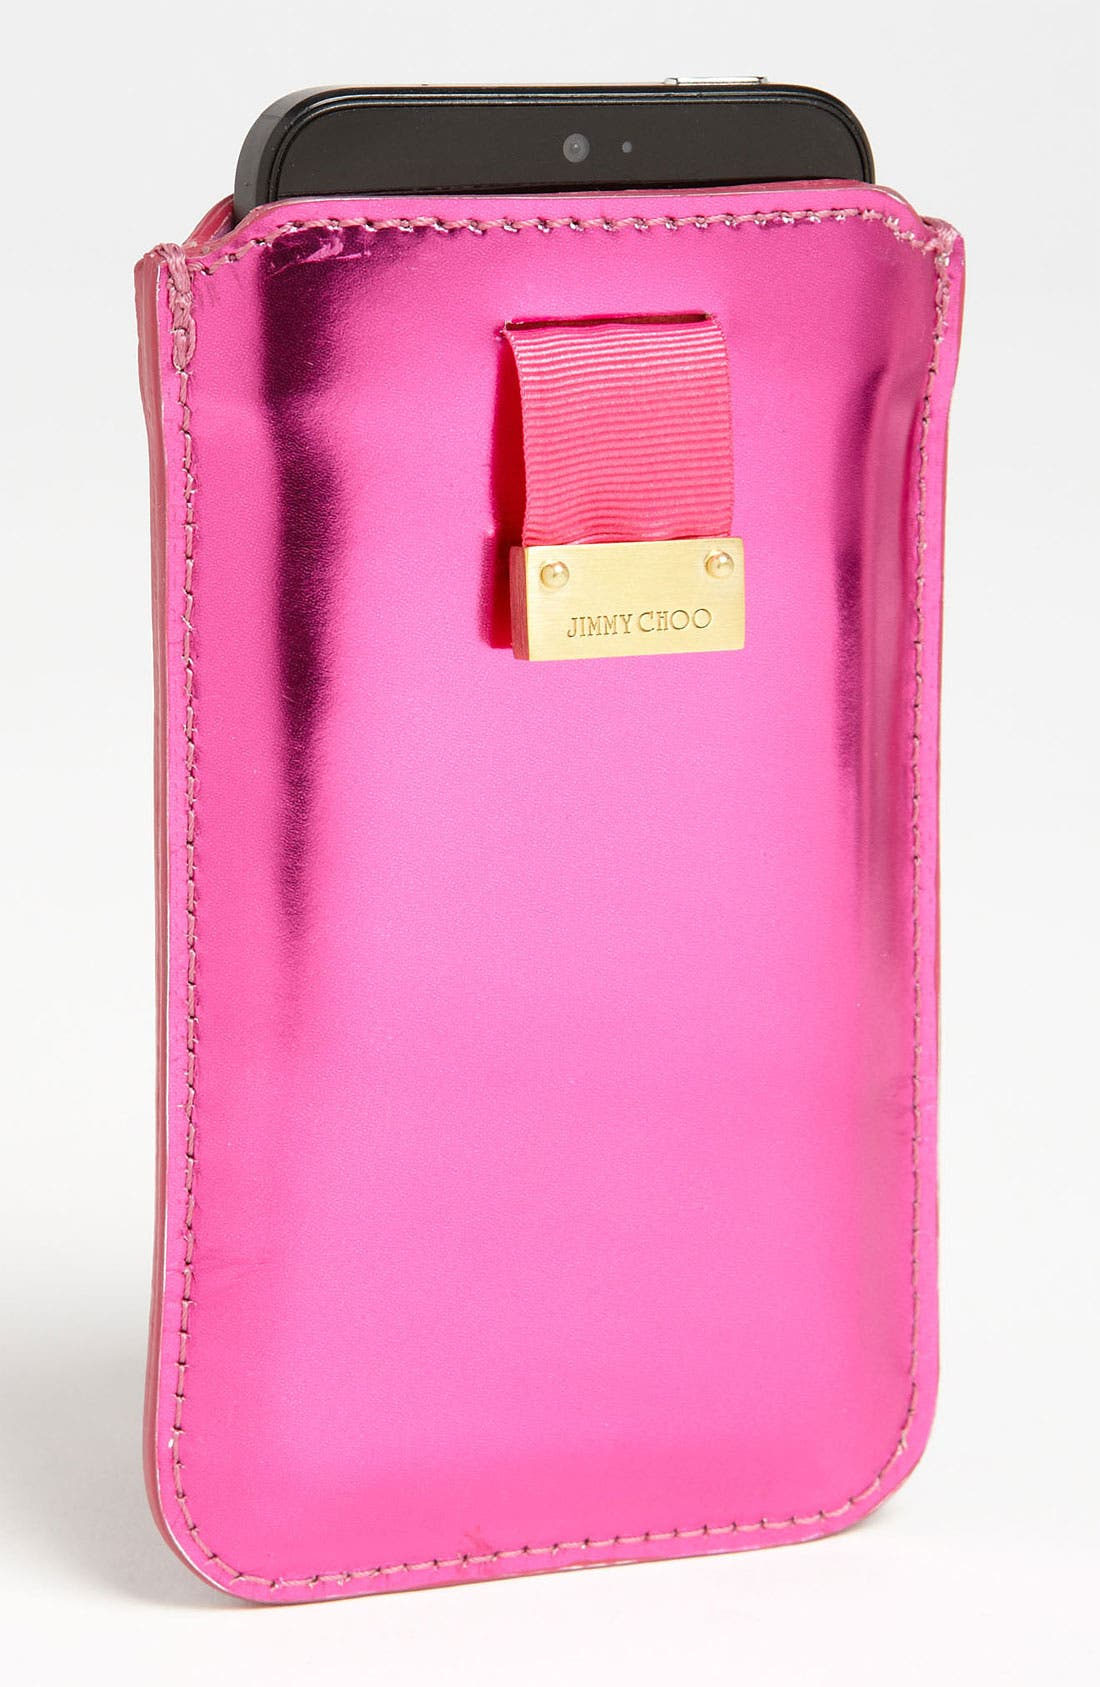 Alternate Image 1 Selected - Jimmy Choo 'Trent - Mirror' iPhone Case